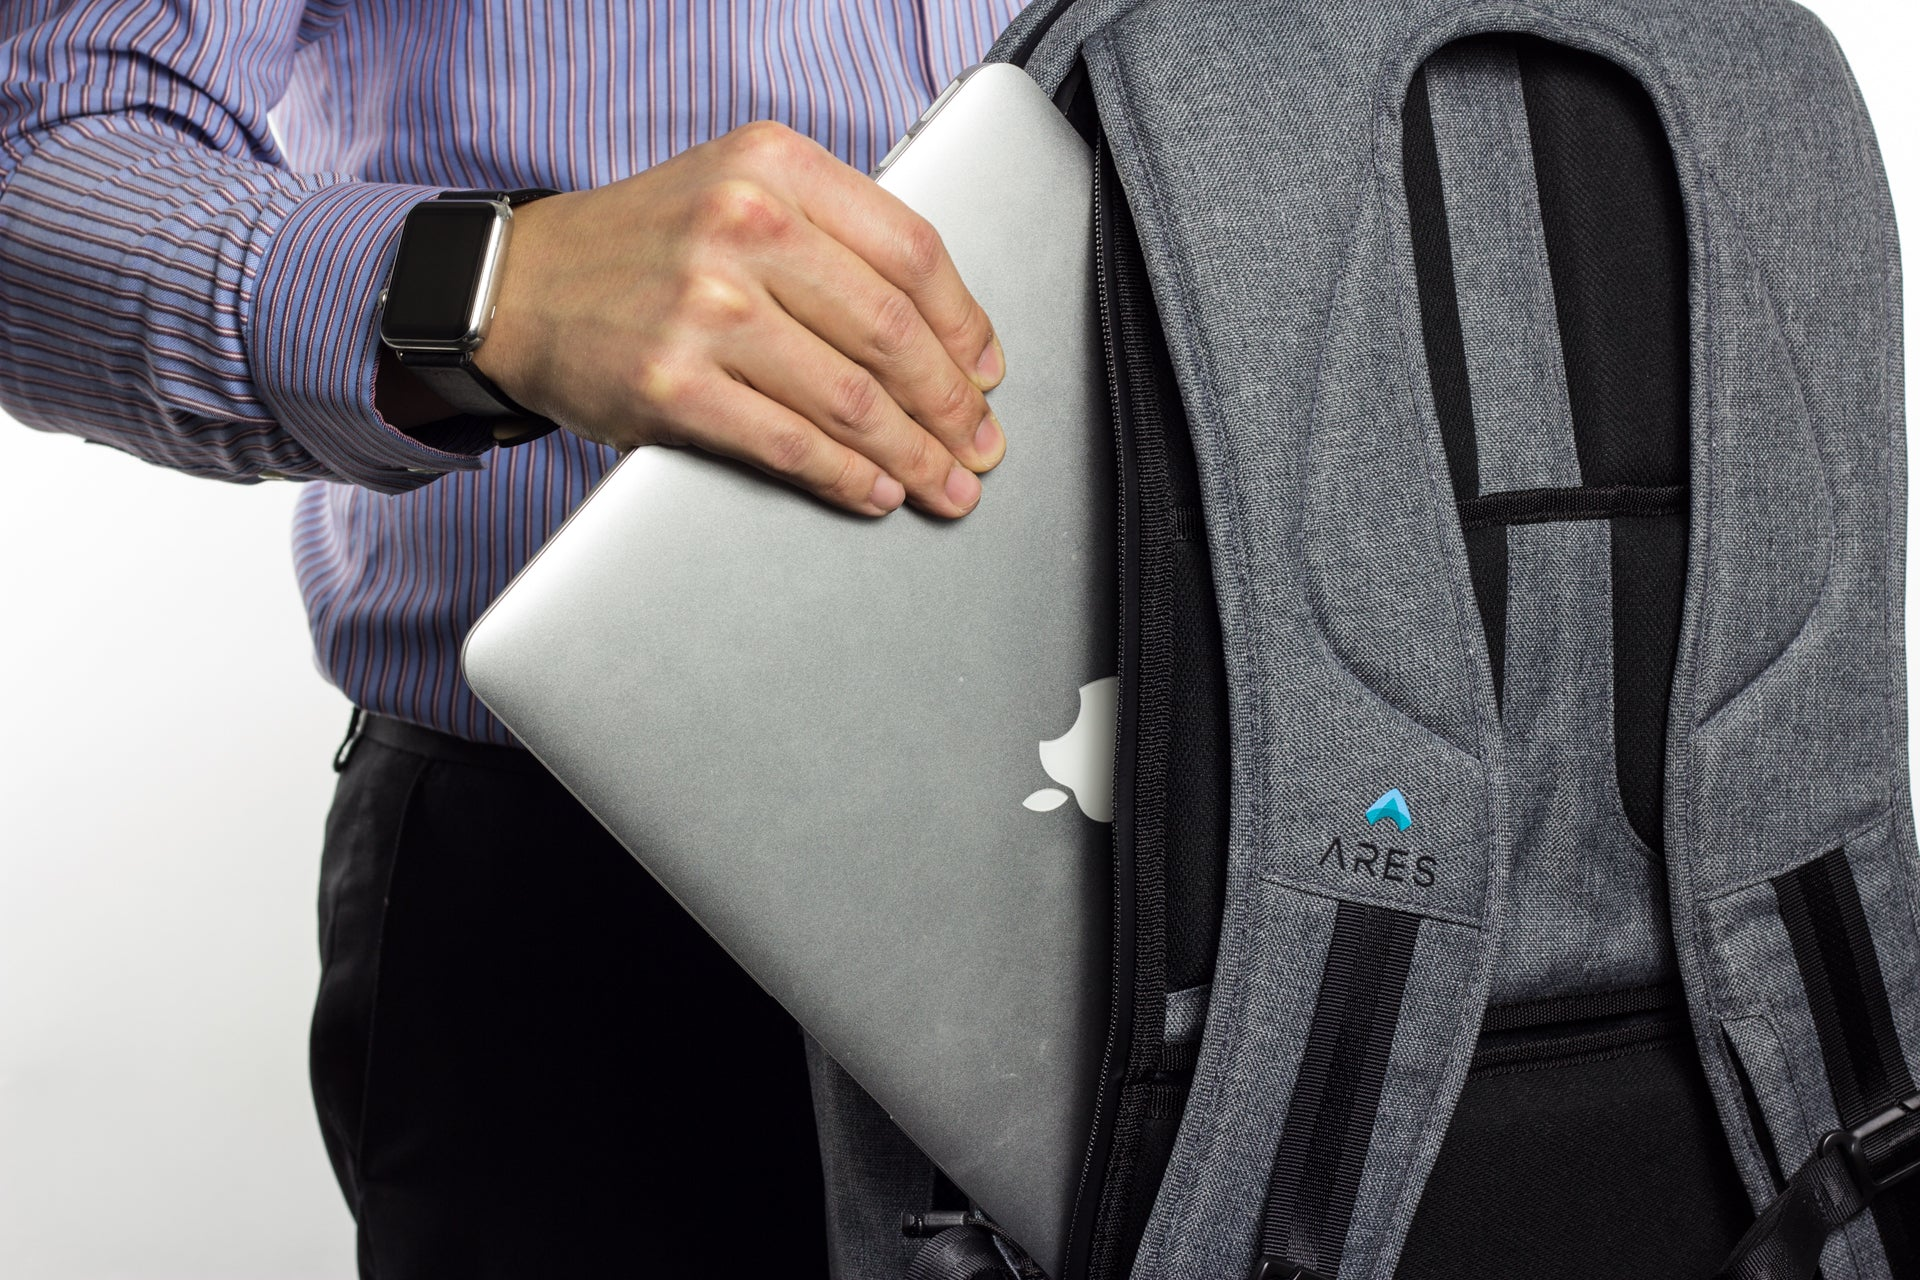 ARES Backpack - Apple Watch Monowear